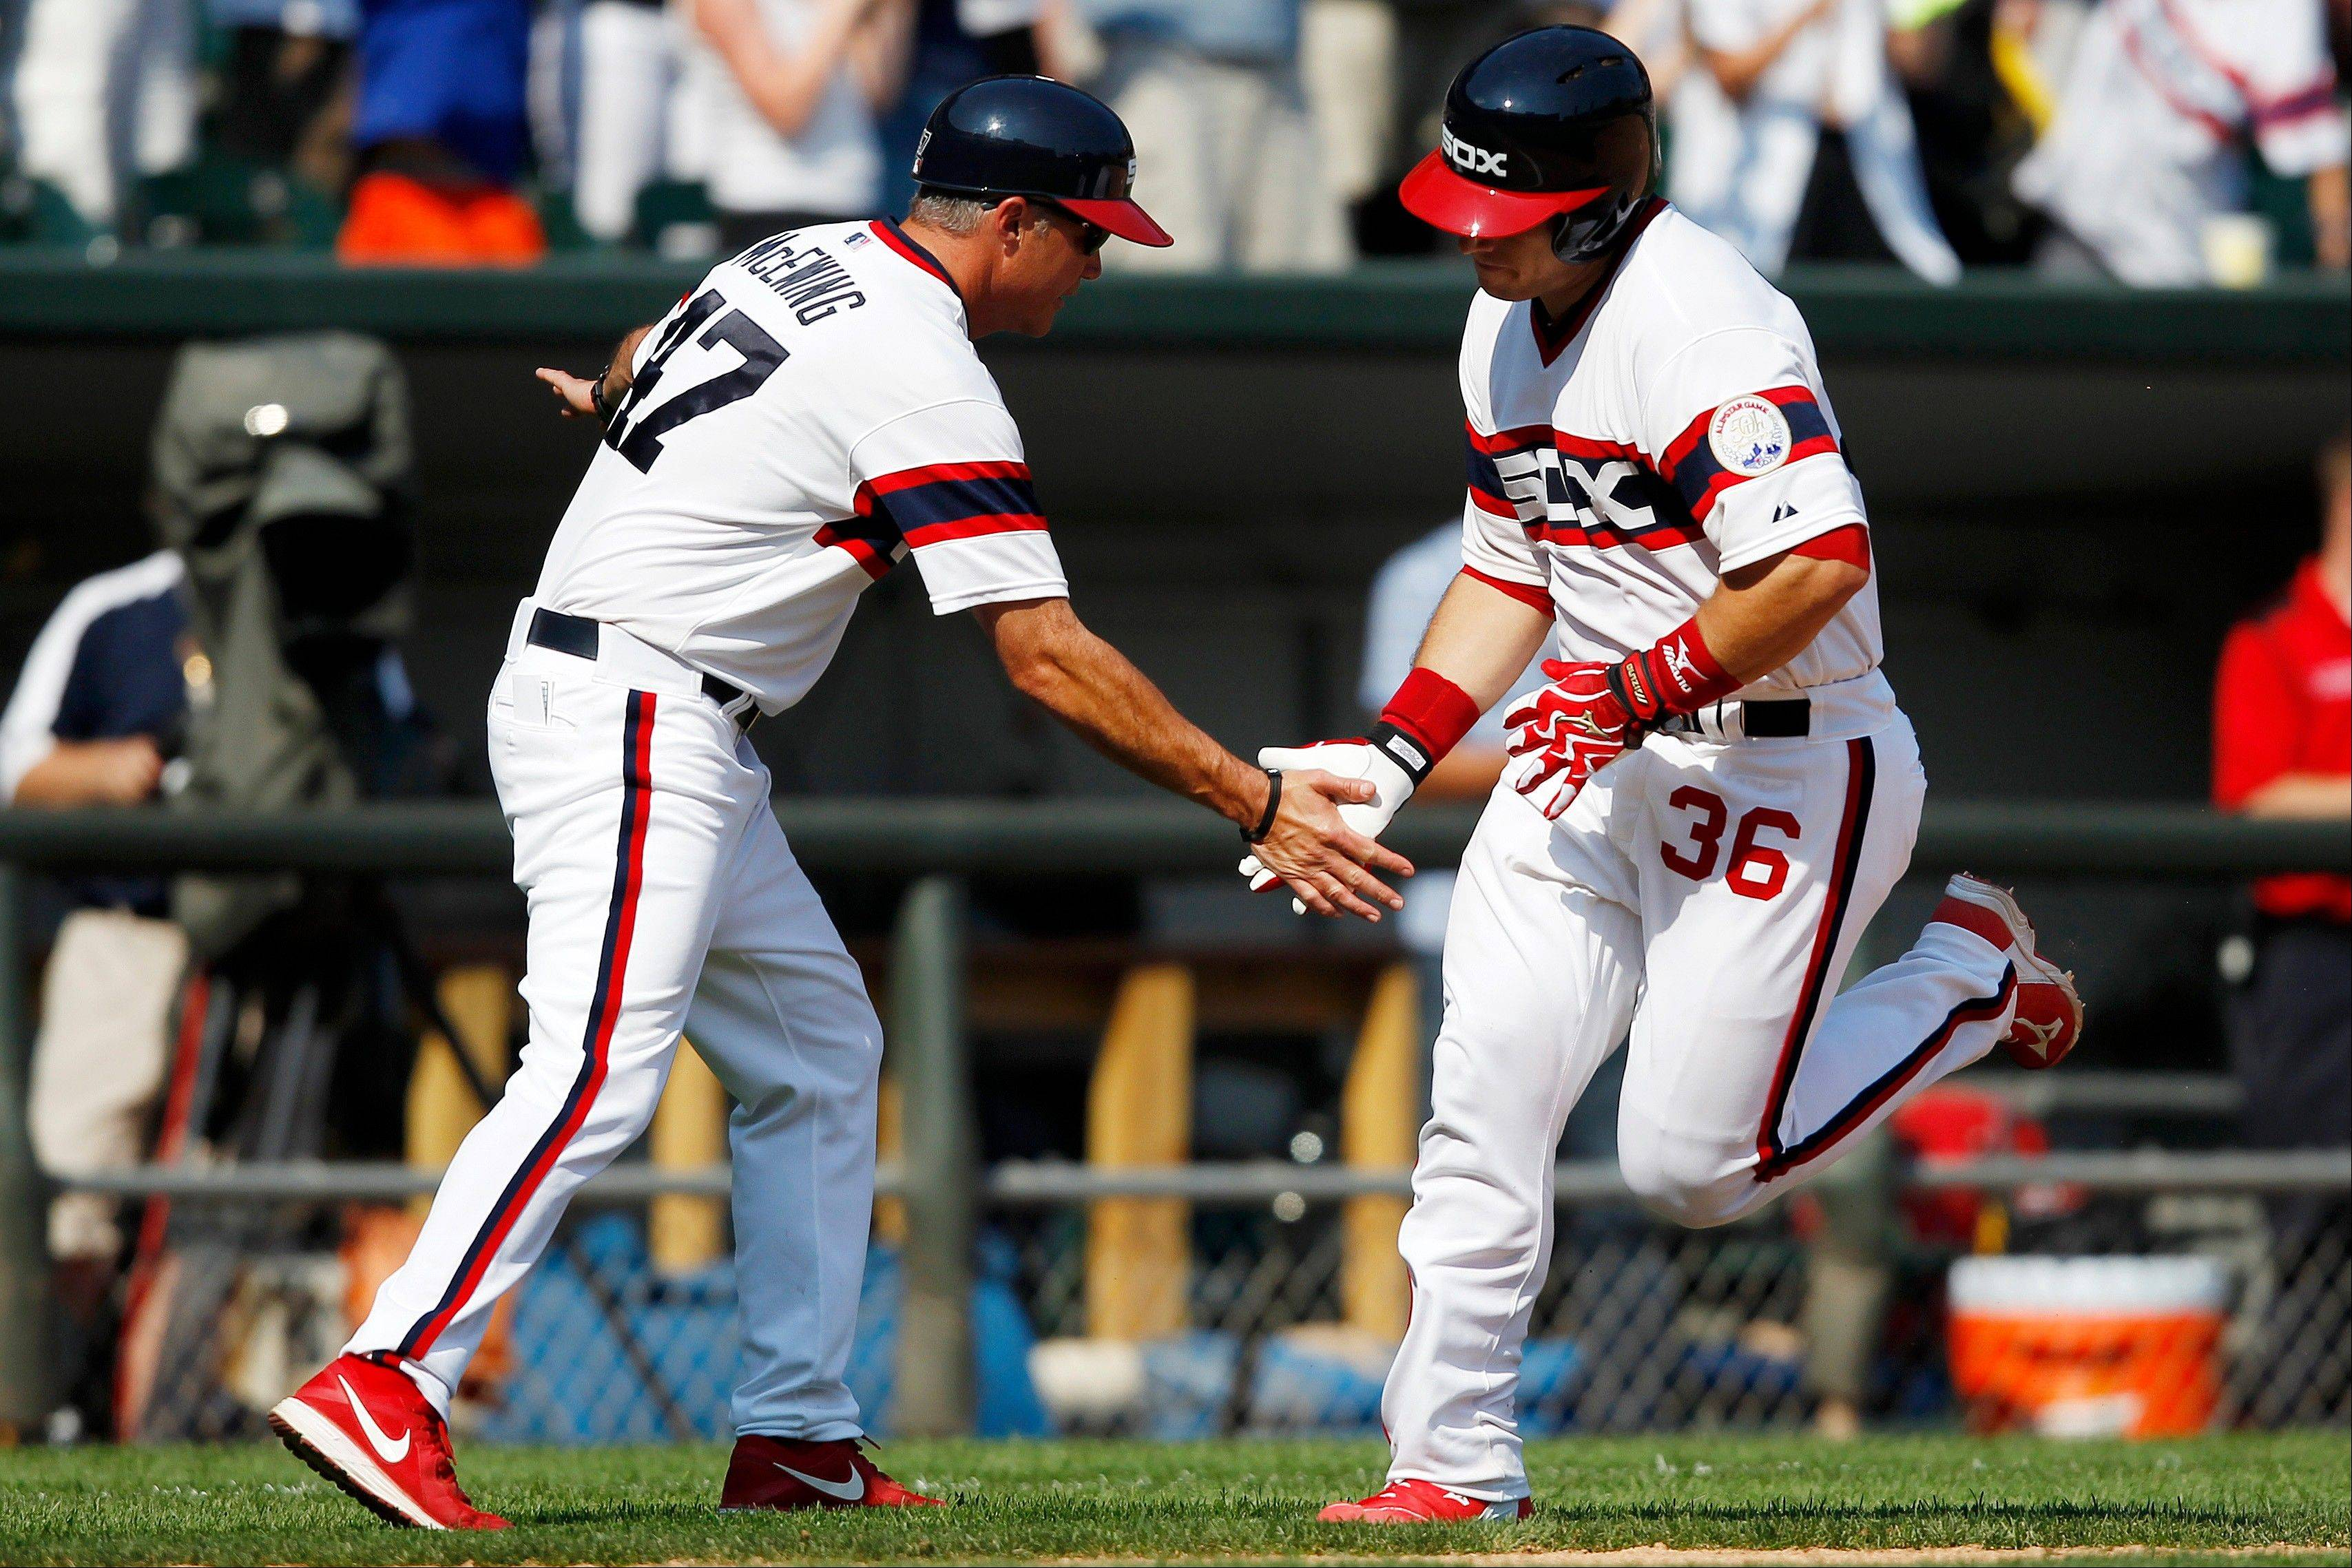 White Sox hitter Josh Phegley is congratulated by third base coach Joe McEwing after hitting a home run against the Texas Rangers during Sunday�s seventh inning at U.S. Cellular Field.